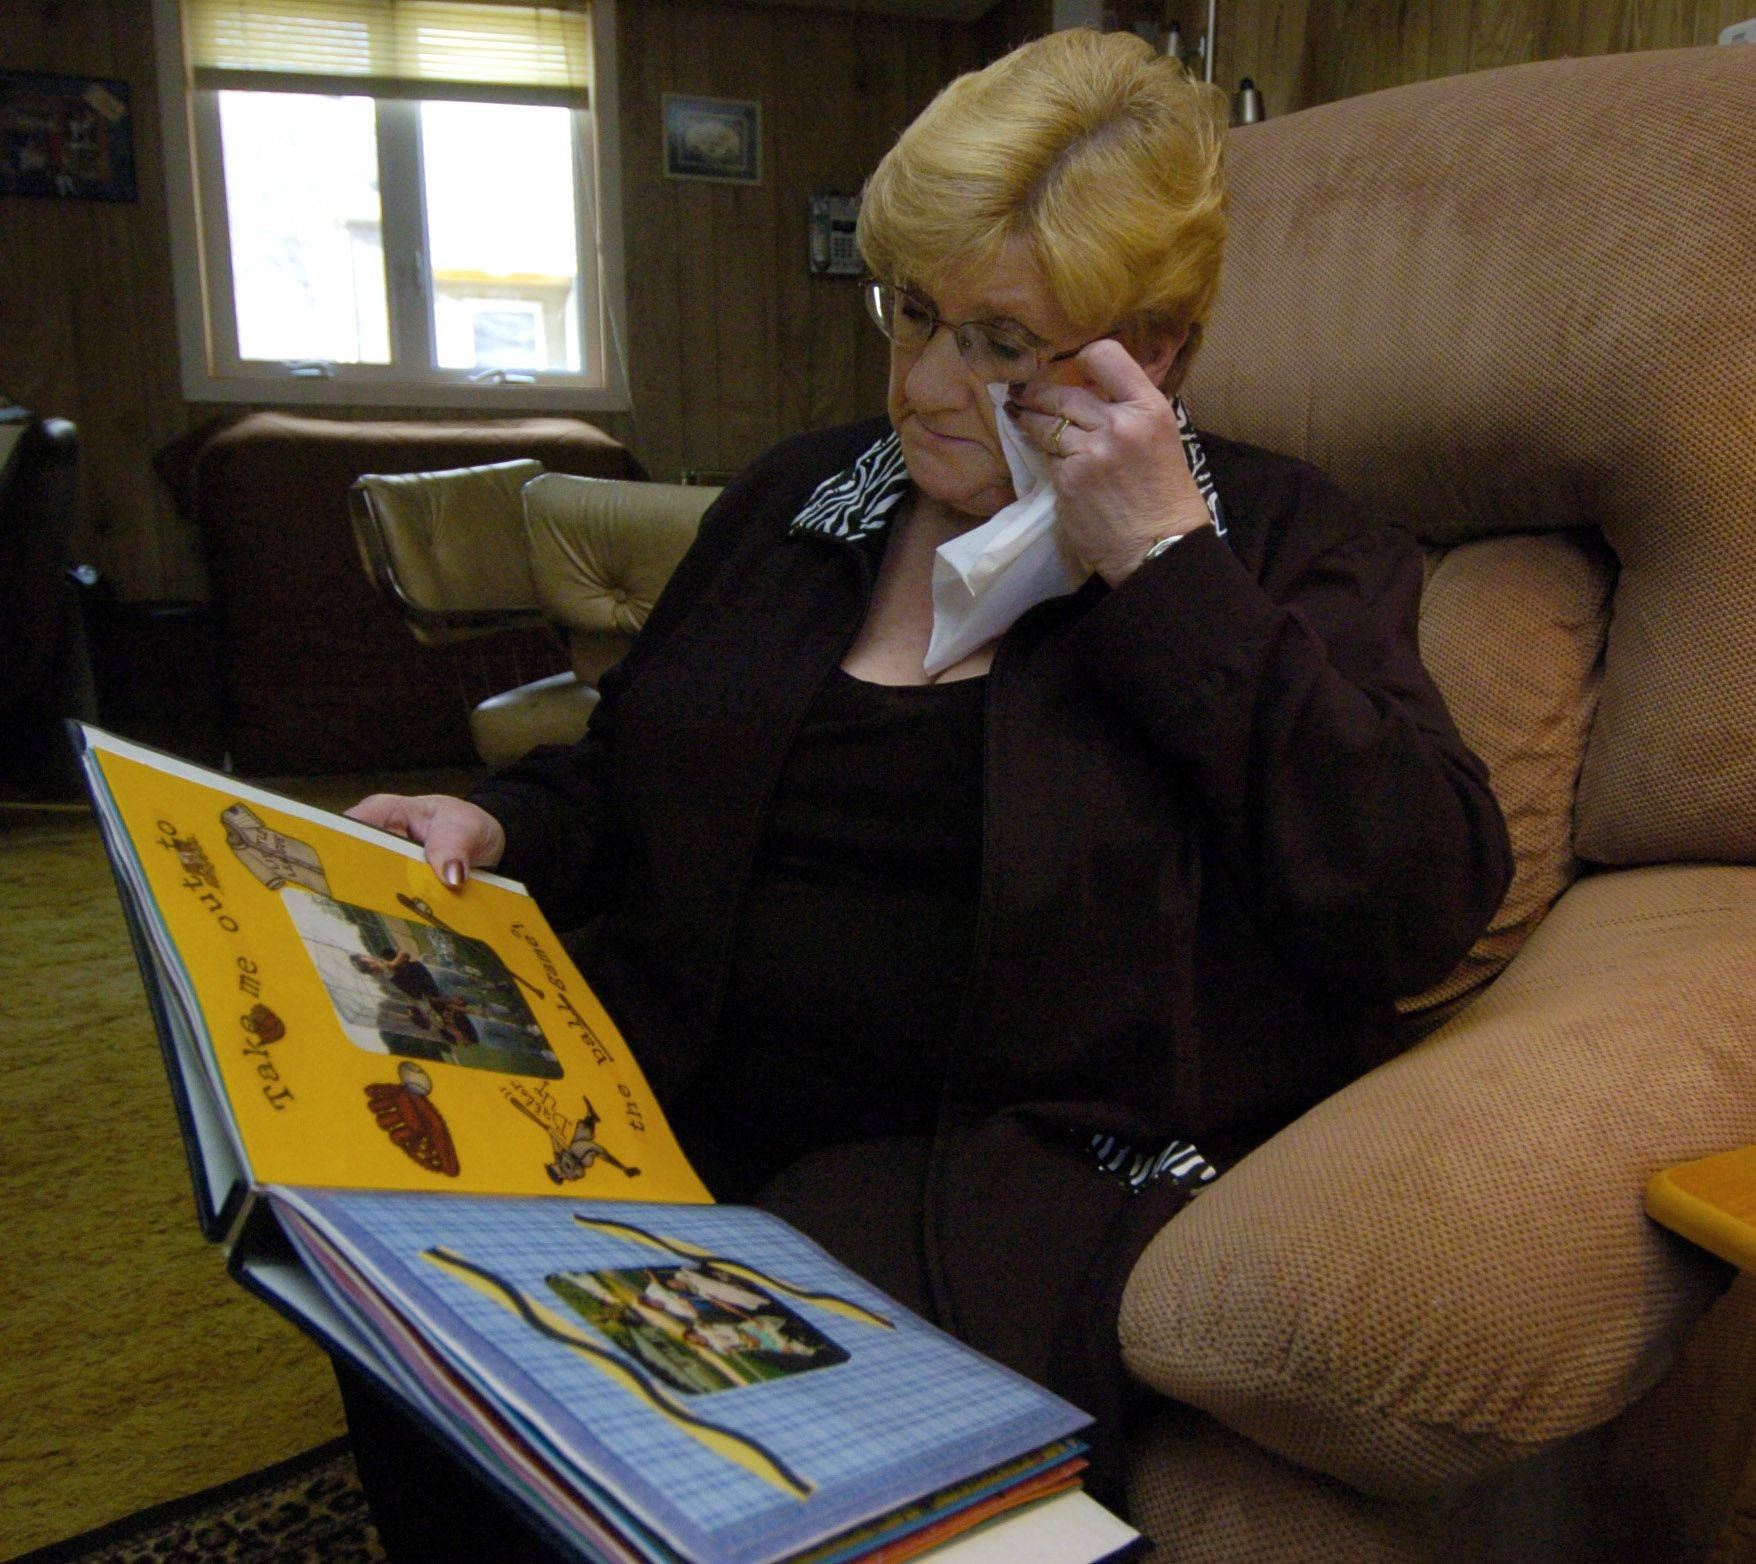 Nanci Koschman of Mount Prospect wipes away tears while viewing scrapbook photos of her son, David.